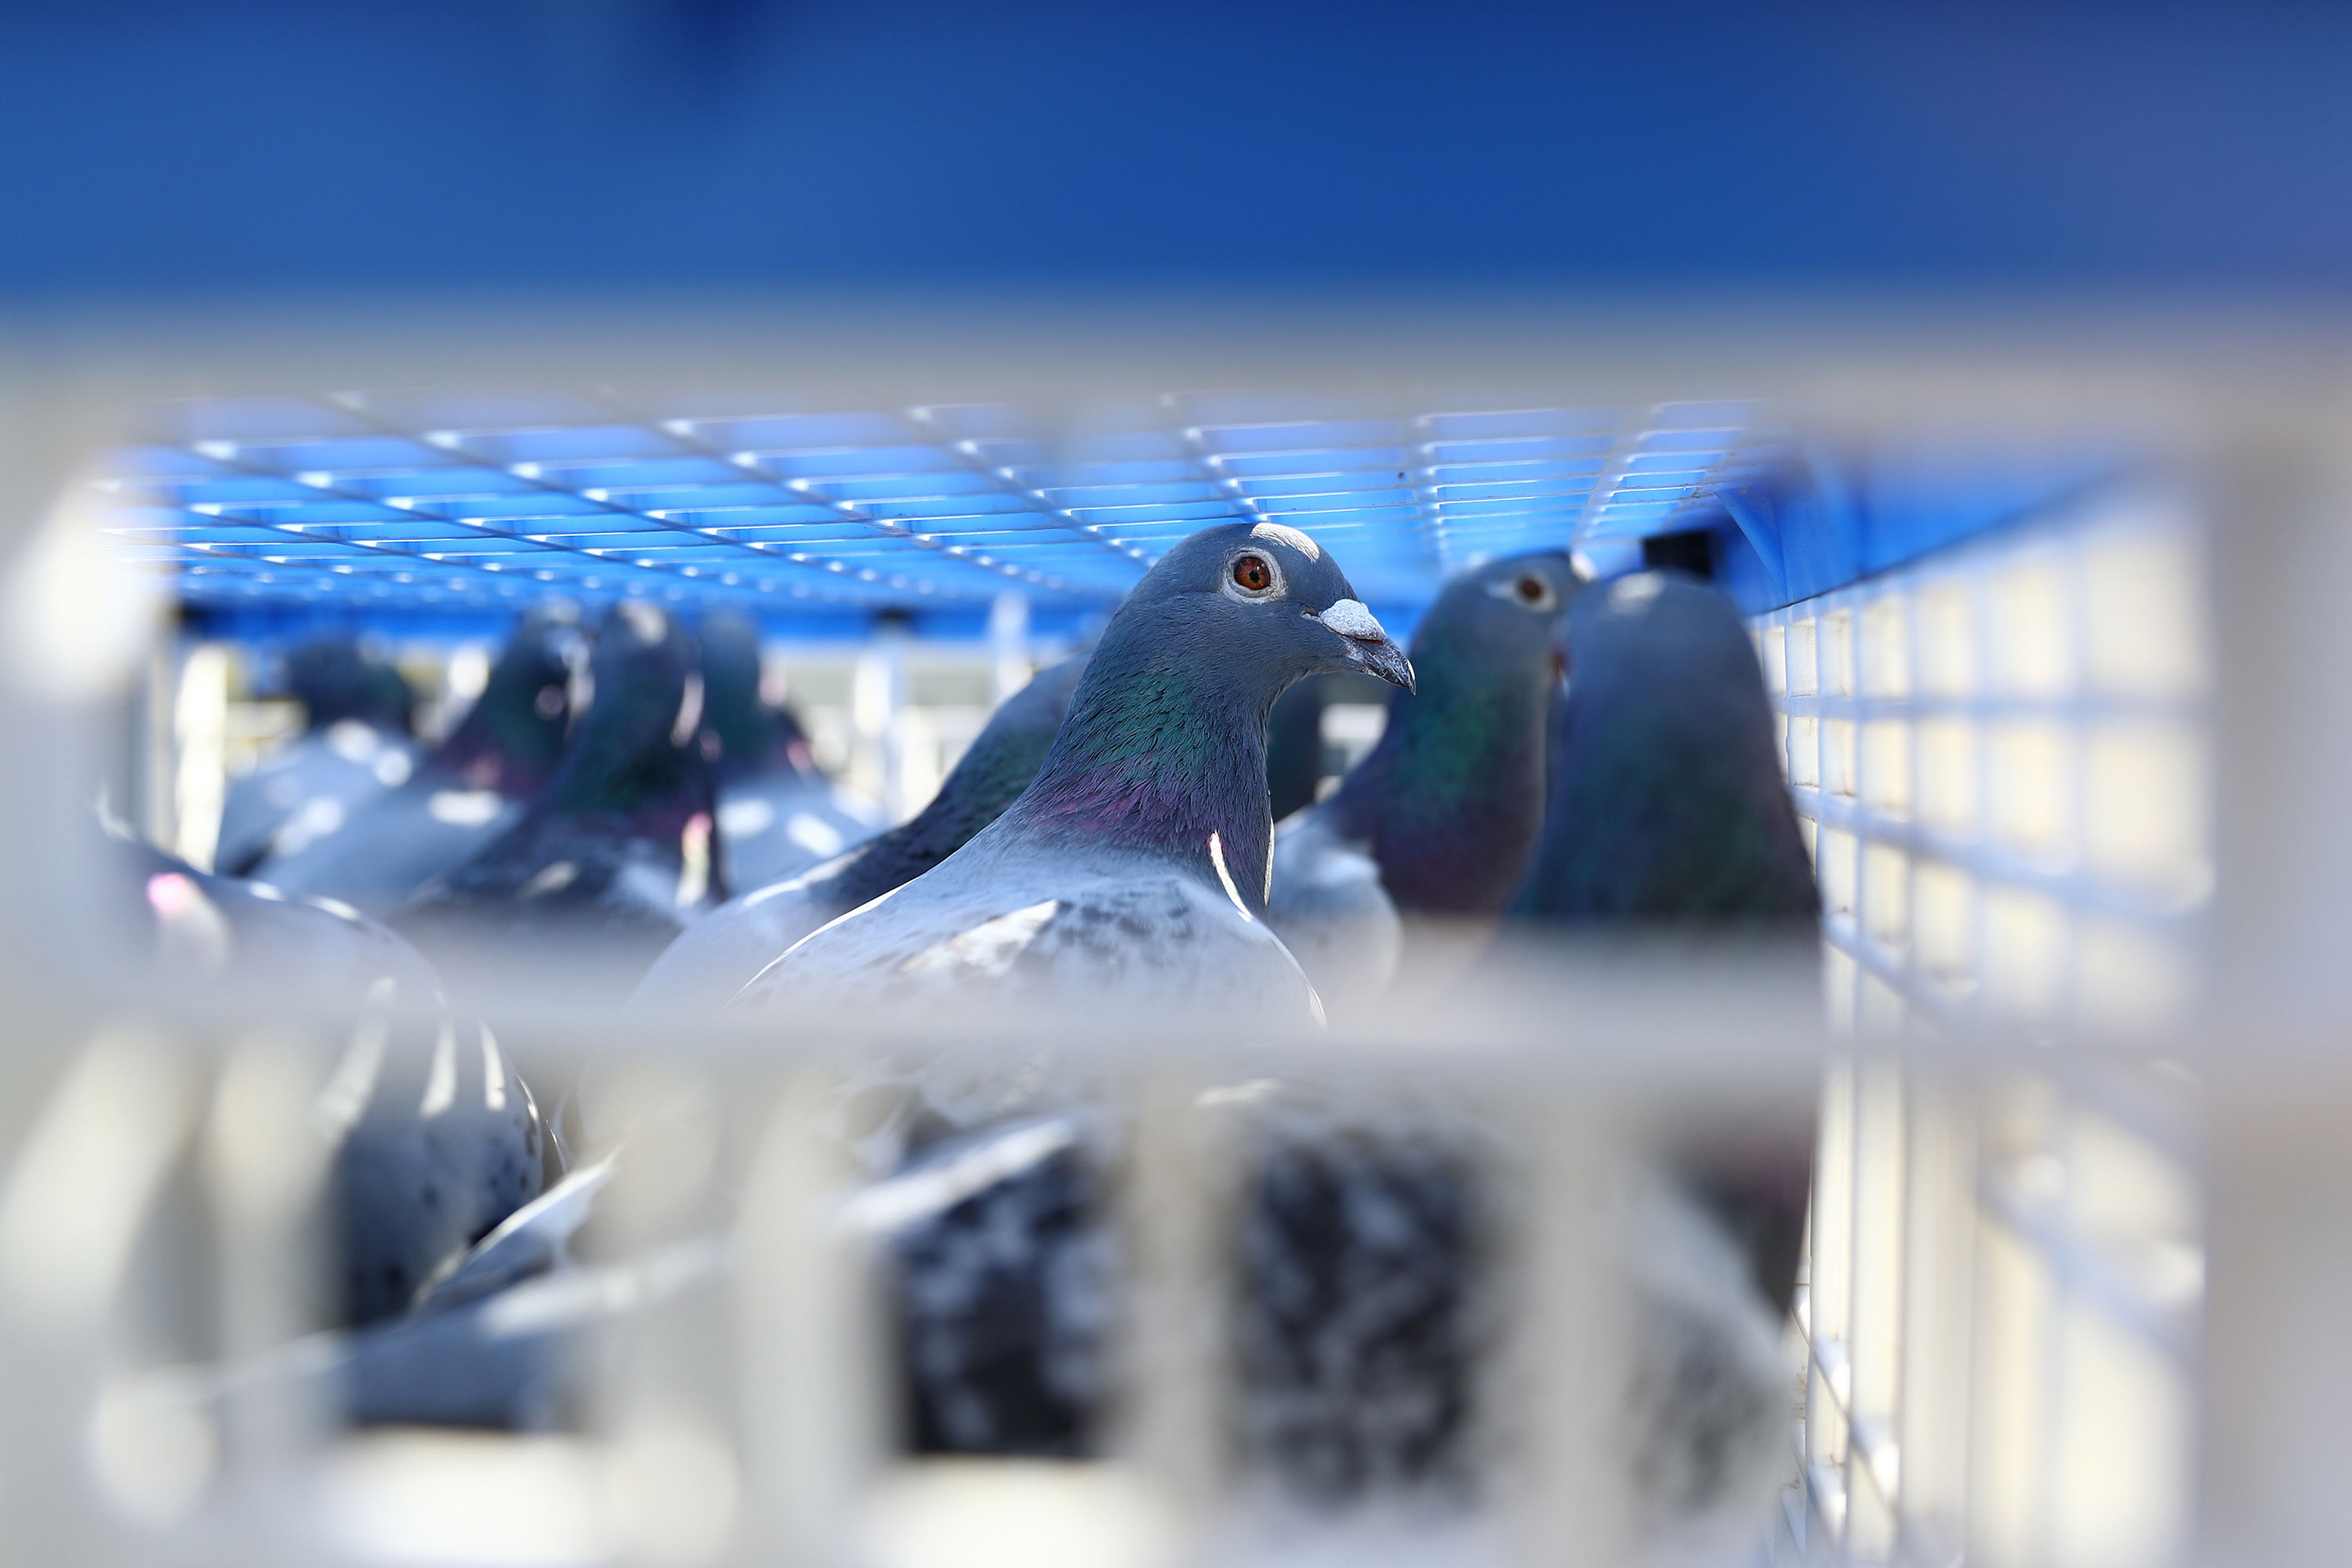 'Possible poisoning' as 11 birds found dead ahead of major pigeon race